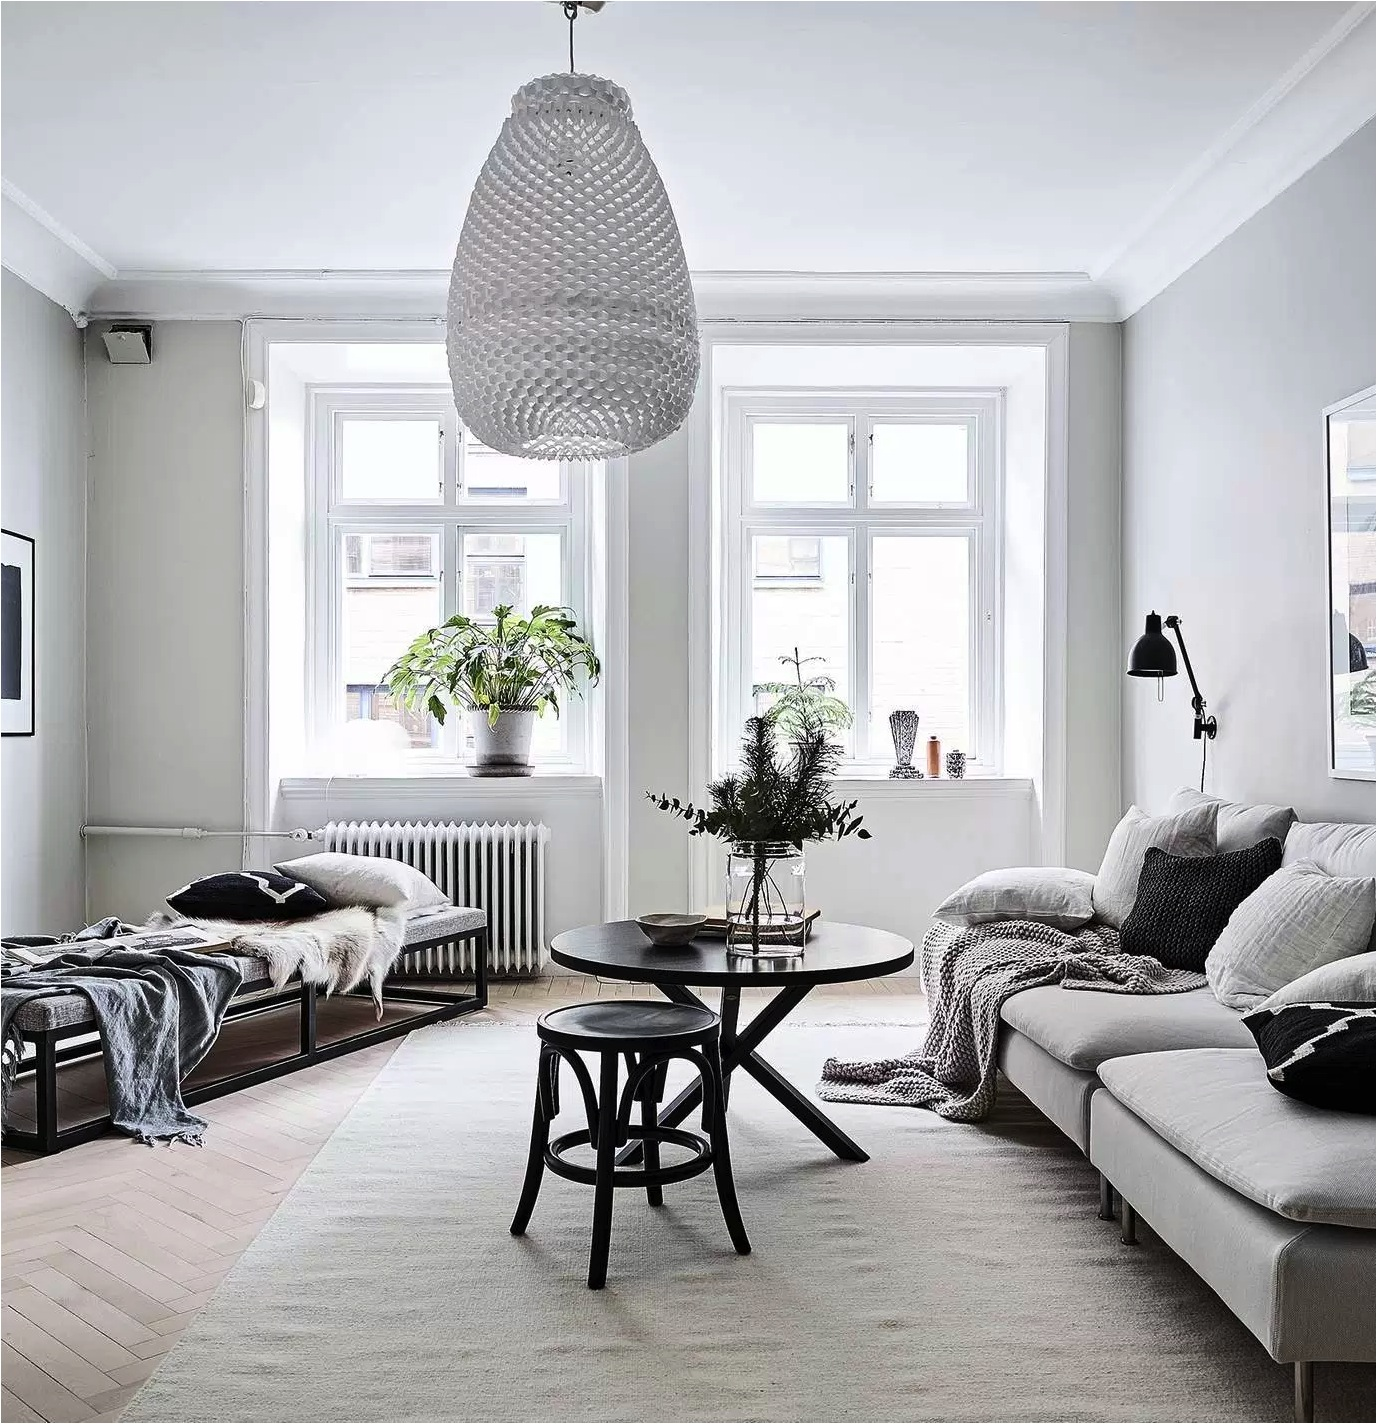 8 Clever Small Living Room Ideas With Scandi Style Diy Home Decor Your Diy Family